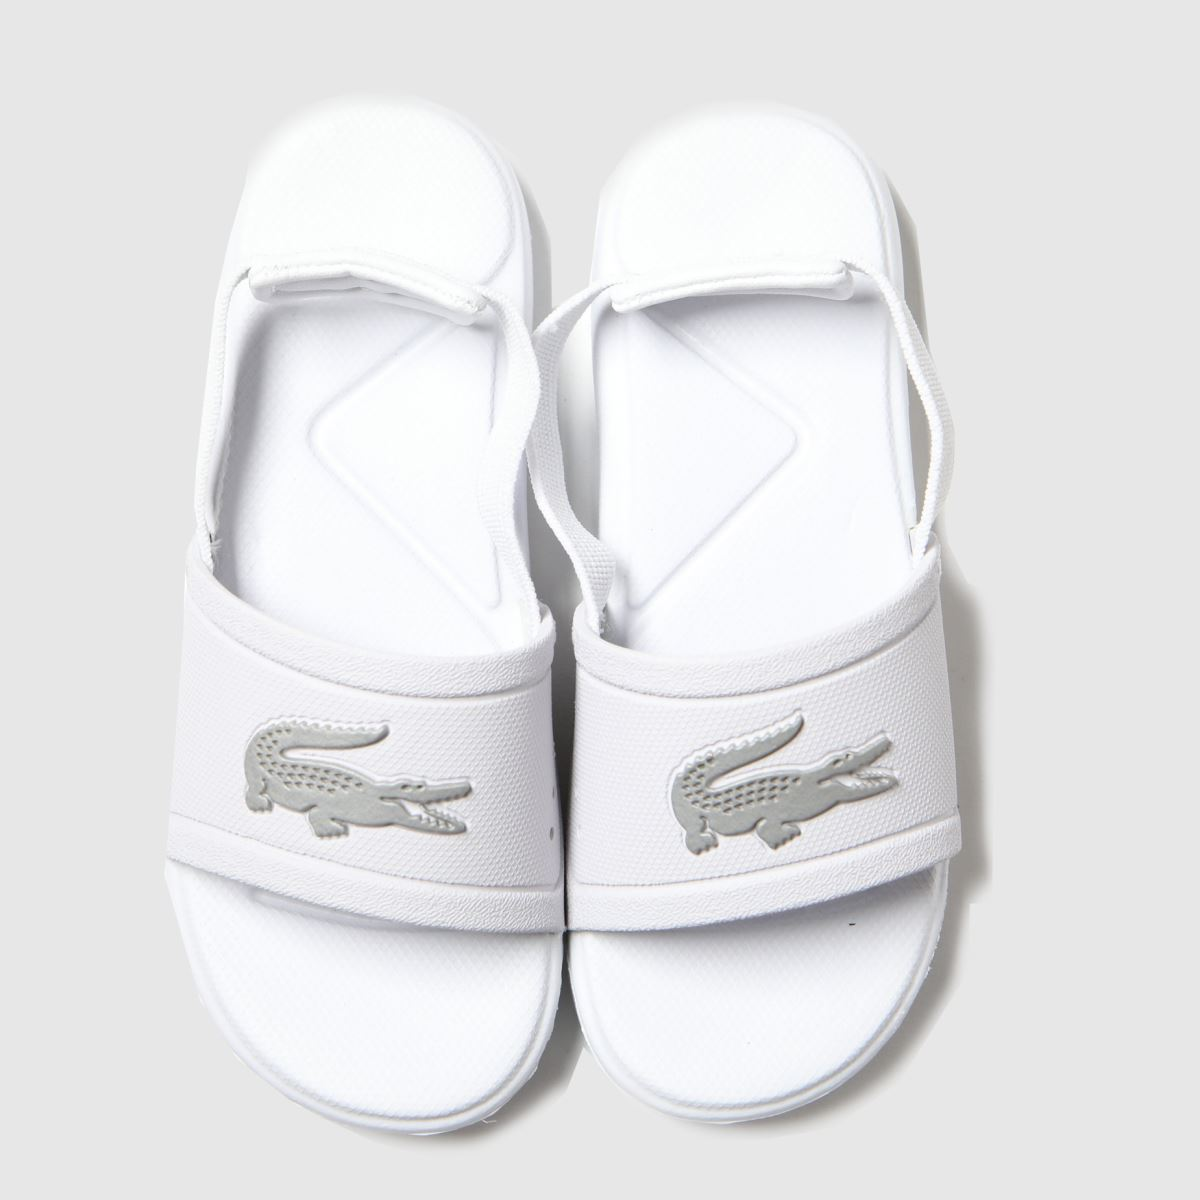 Lacoste White & Silver L.30 Slide Trainers Toddler